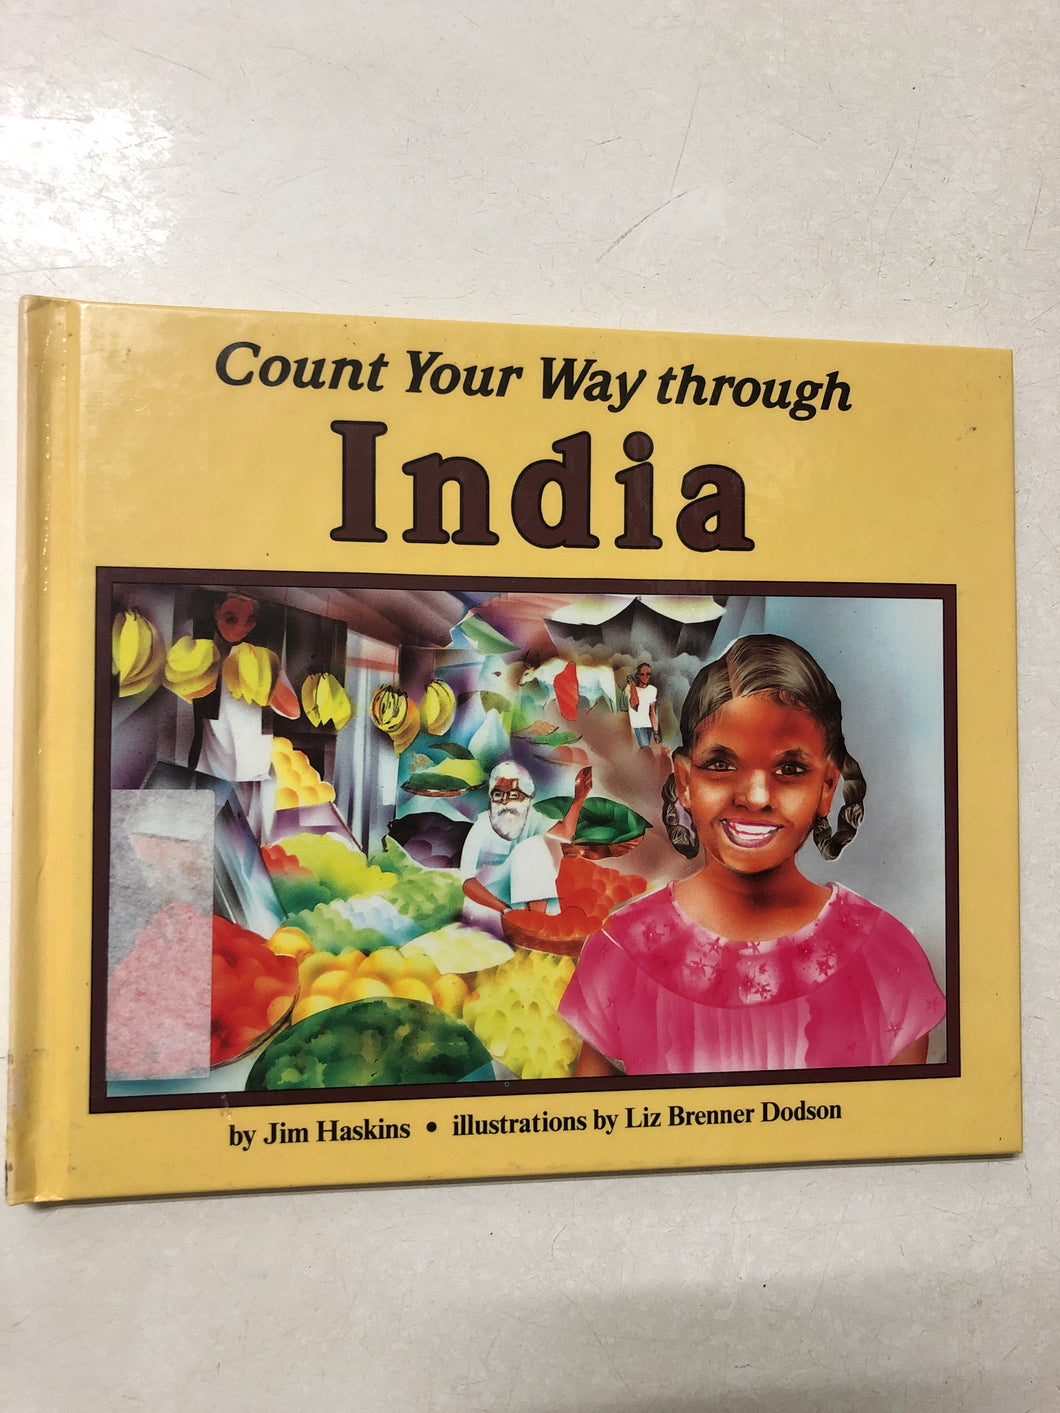 Count Your Way Through India - Slick Cat Books